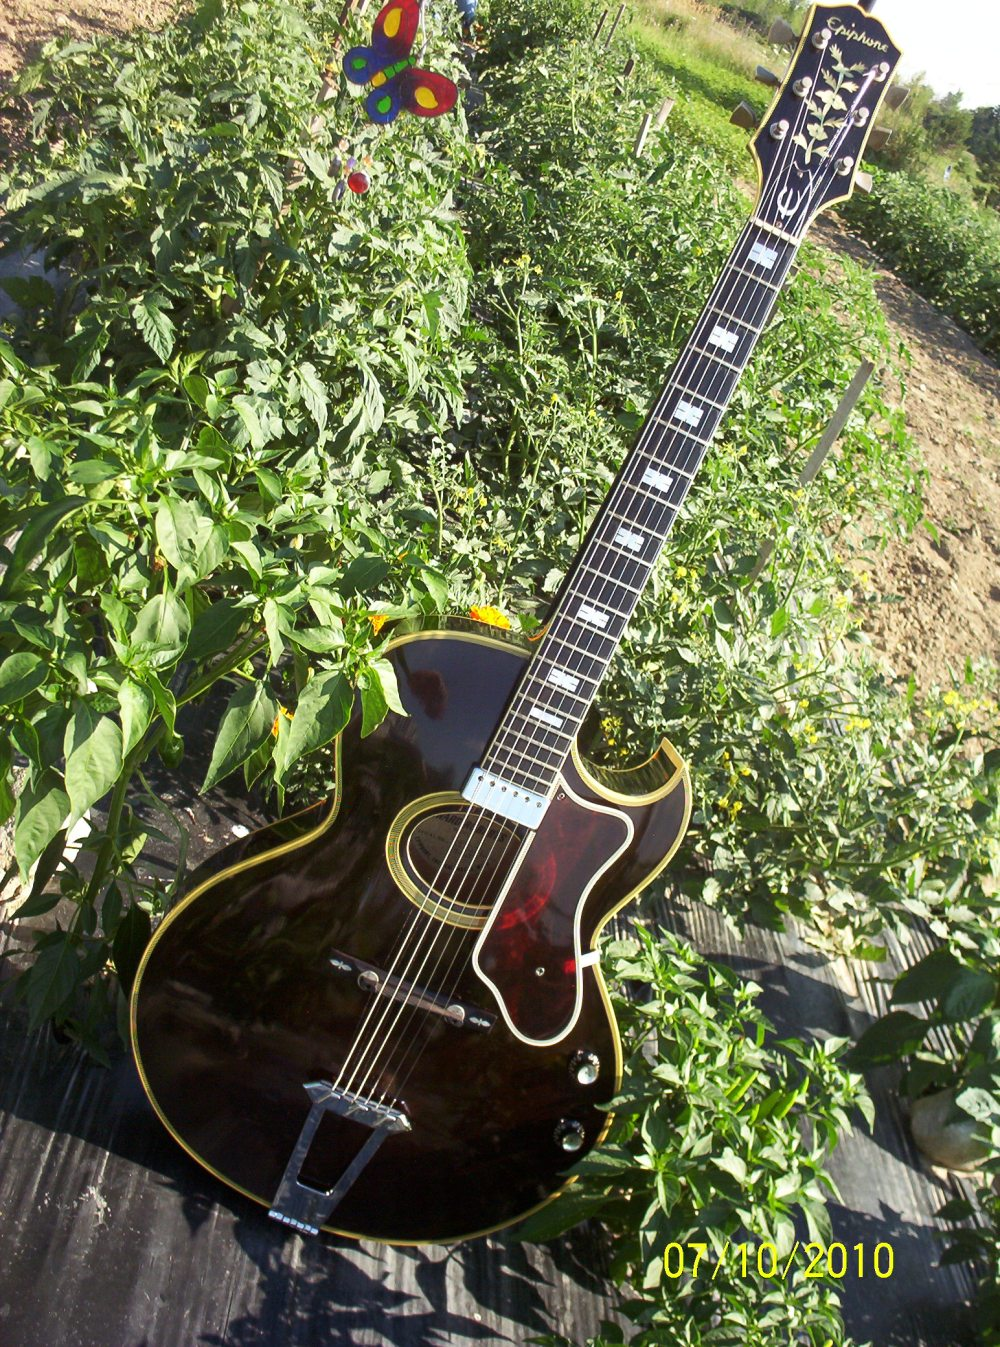 medium resolution of this guitar was previously owned by jazz guitarist edward eudimio marocco of new haven michigan and was sold to me by his guitarist son james rocco